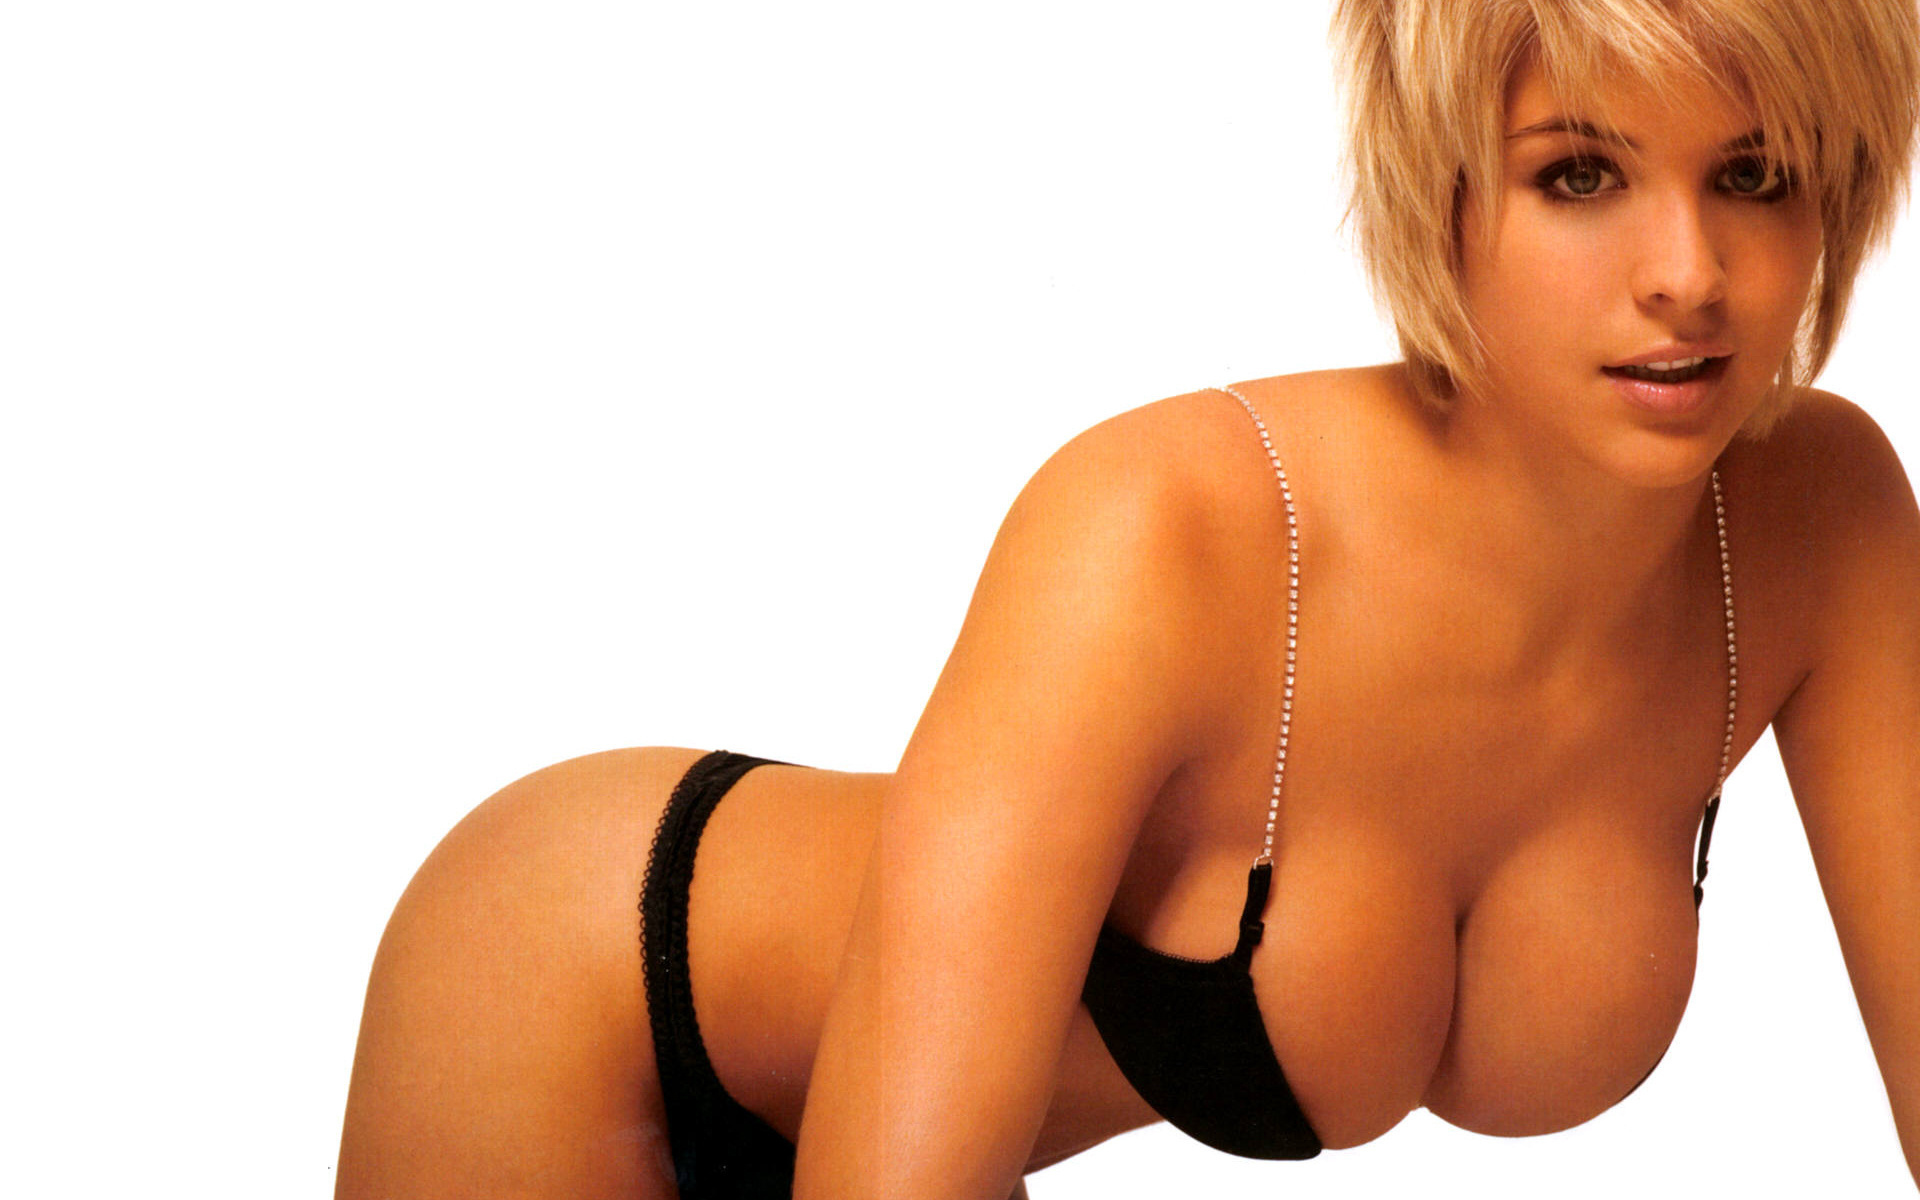 Gemma atkinson nude topless, flashing display picture on myspace